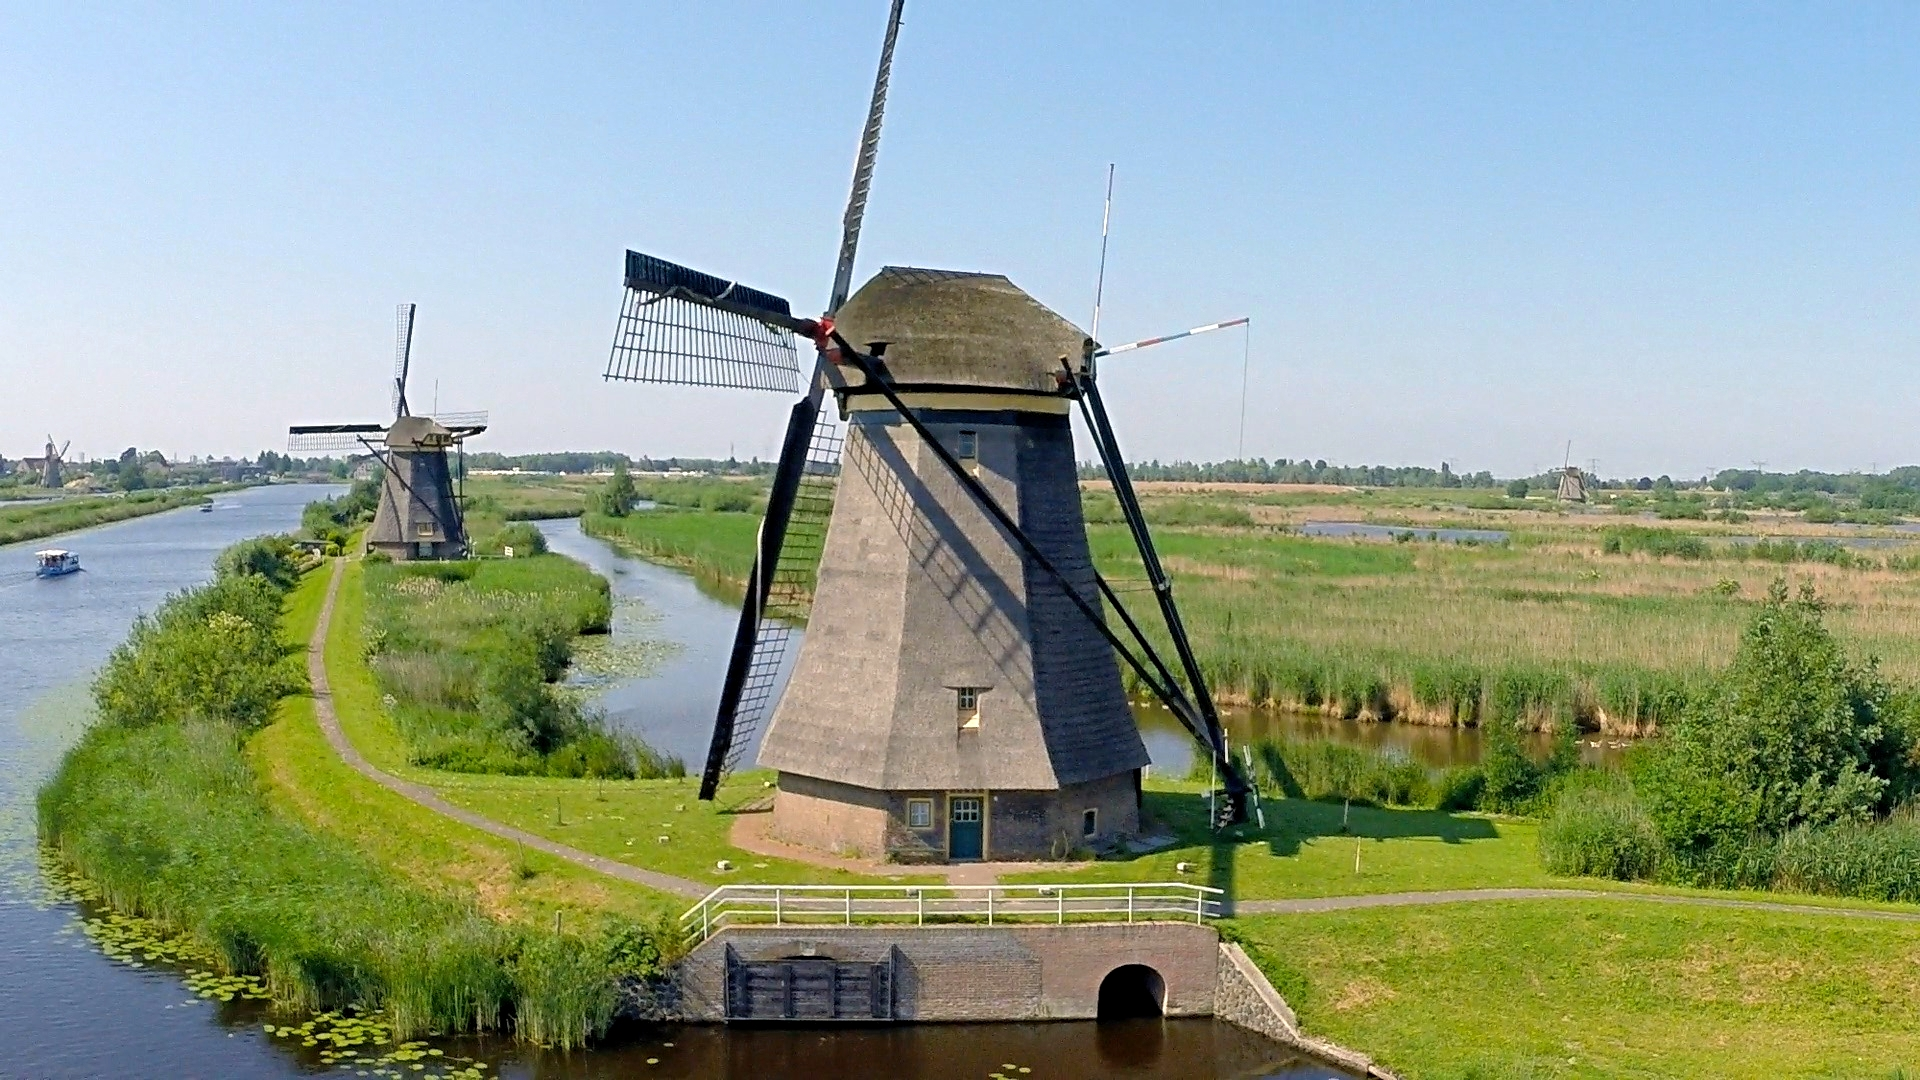 Historic Windmills at Kinderdijk, the Netherlands